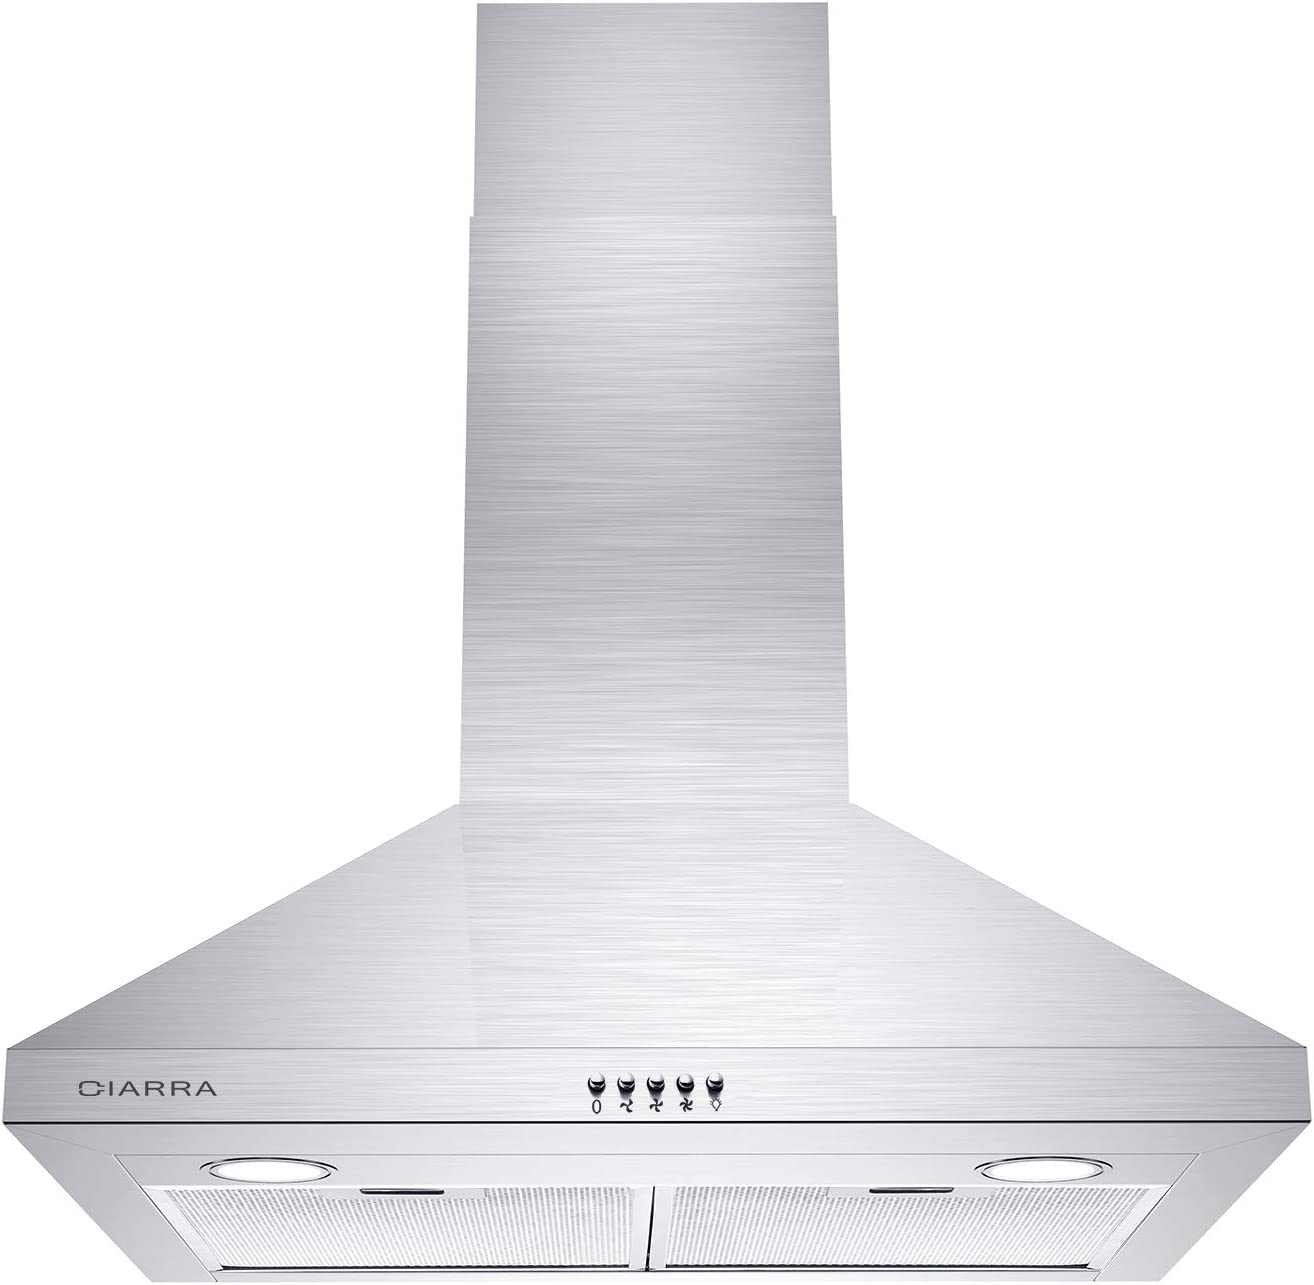 CIARRA CAS75206P 450 CFM Wall Mount Range Hood 30 inch Stainless Steel Stove Vent Hood with 3 Speed Exhaust Fan, Aluminum Mesh Filters, Ducted/Ductless Convertible Duct, Push Button